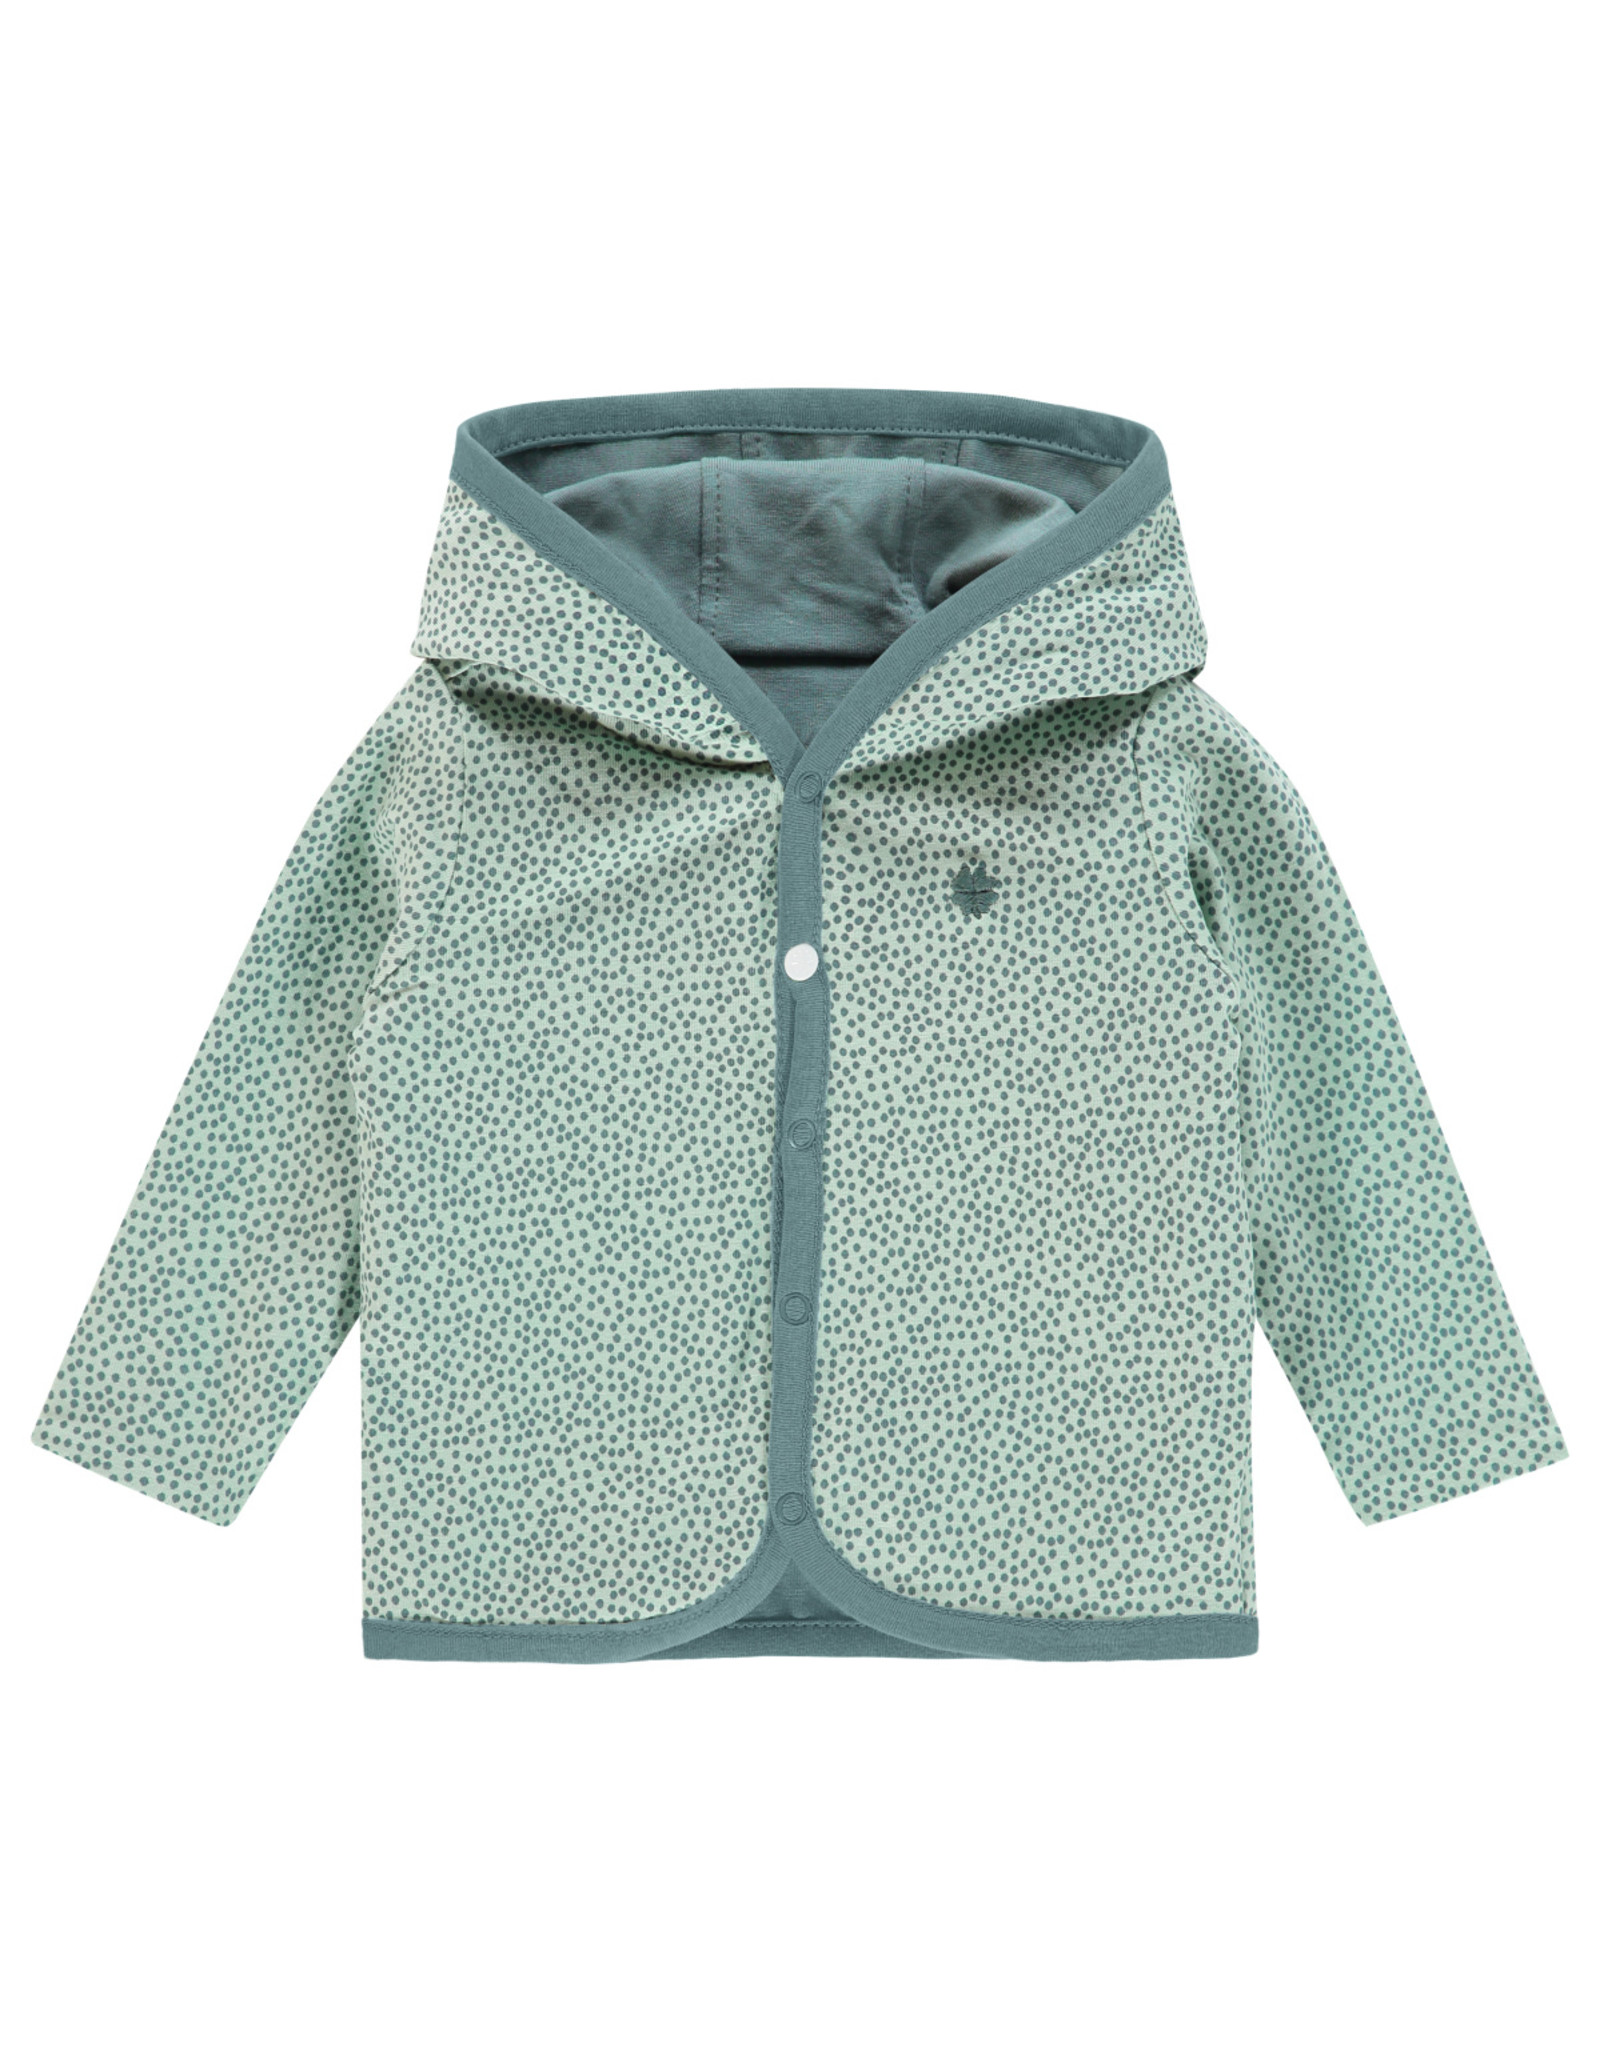 Noppies U Cardigan rev Haye grey mint